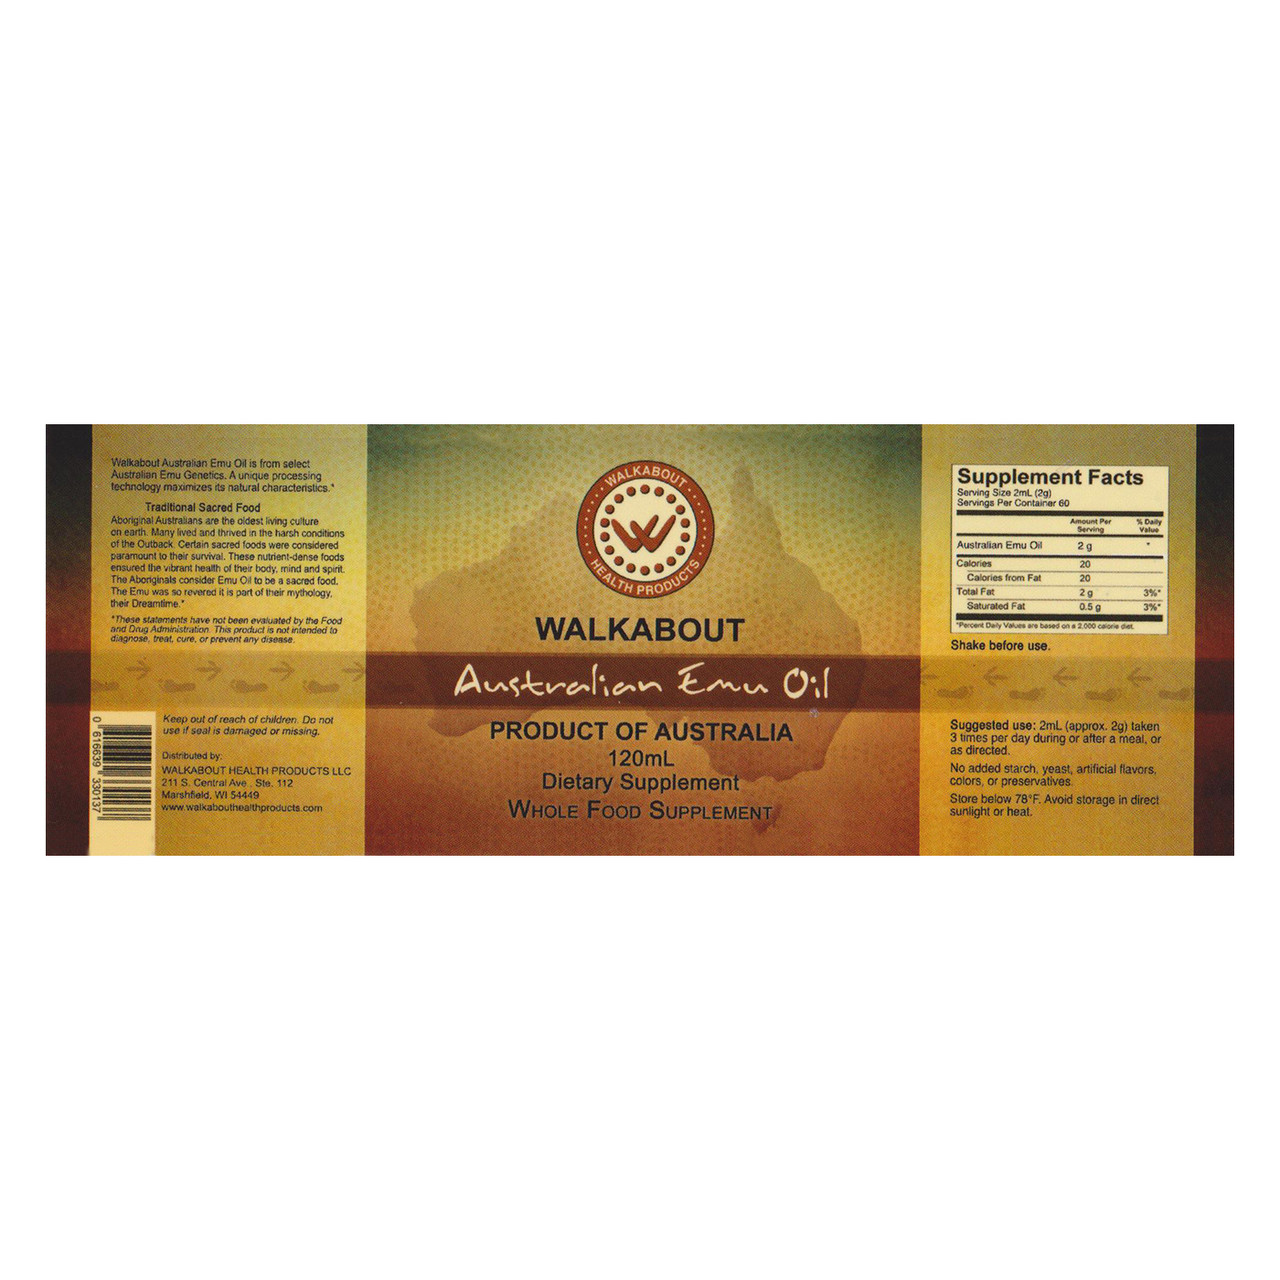 View of the full label including supplement facts for a bottle of Walkabout Australian Emu Oil Liquid.